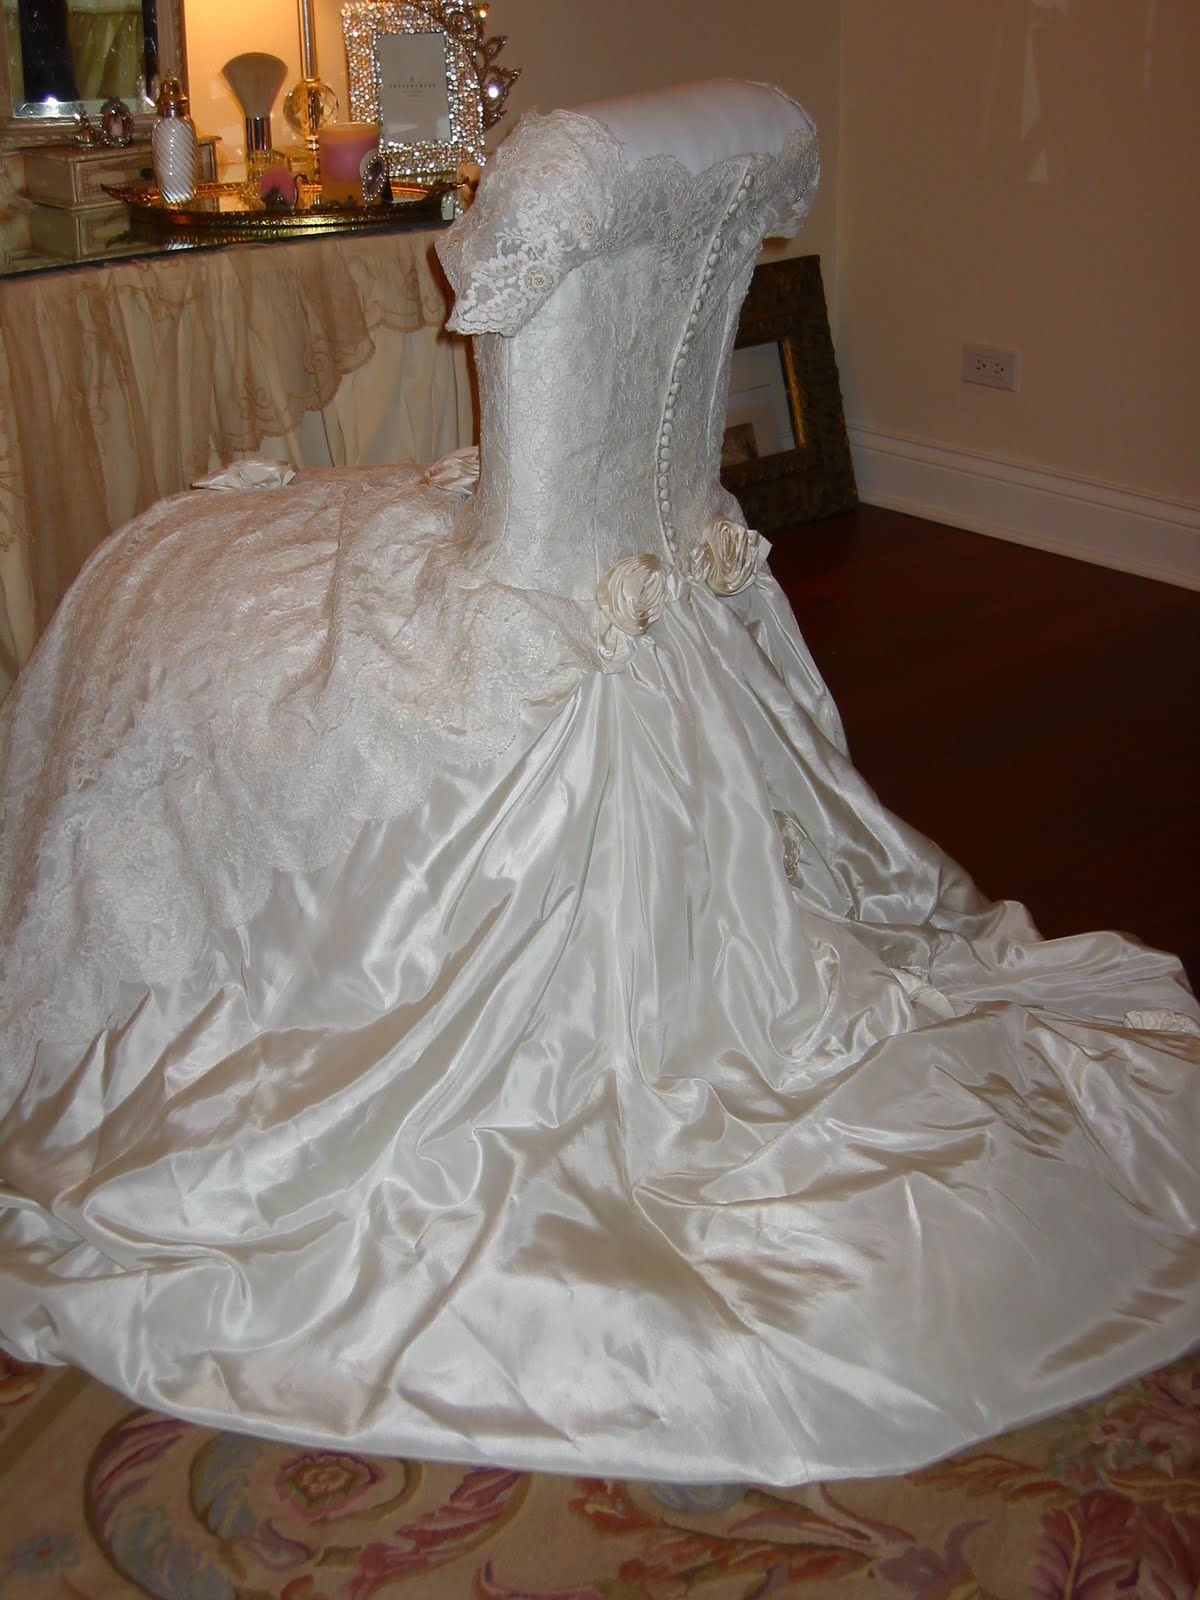 Wedding dress chair cover Romancing the Home